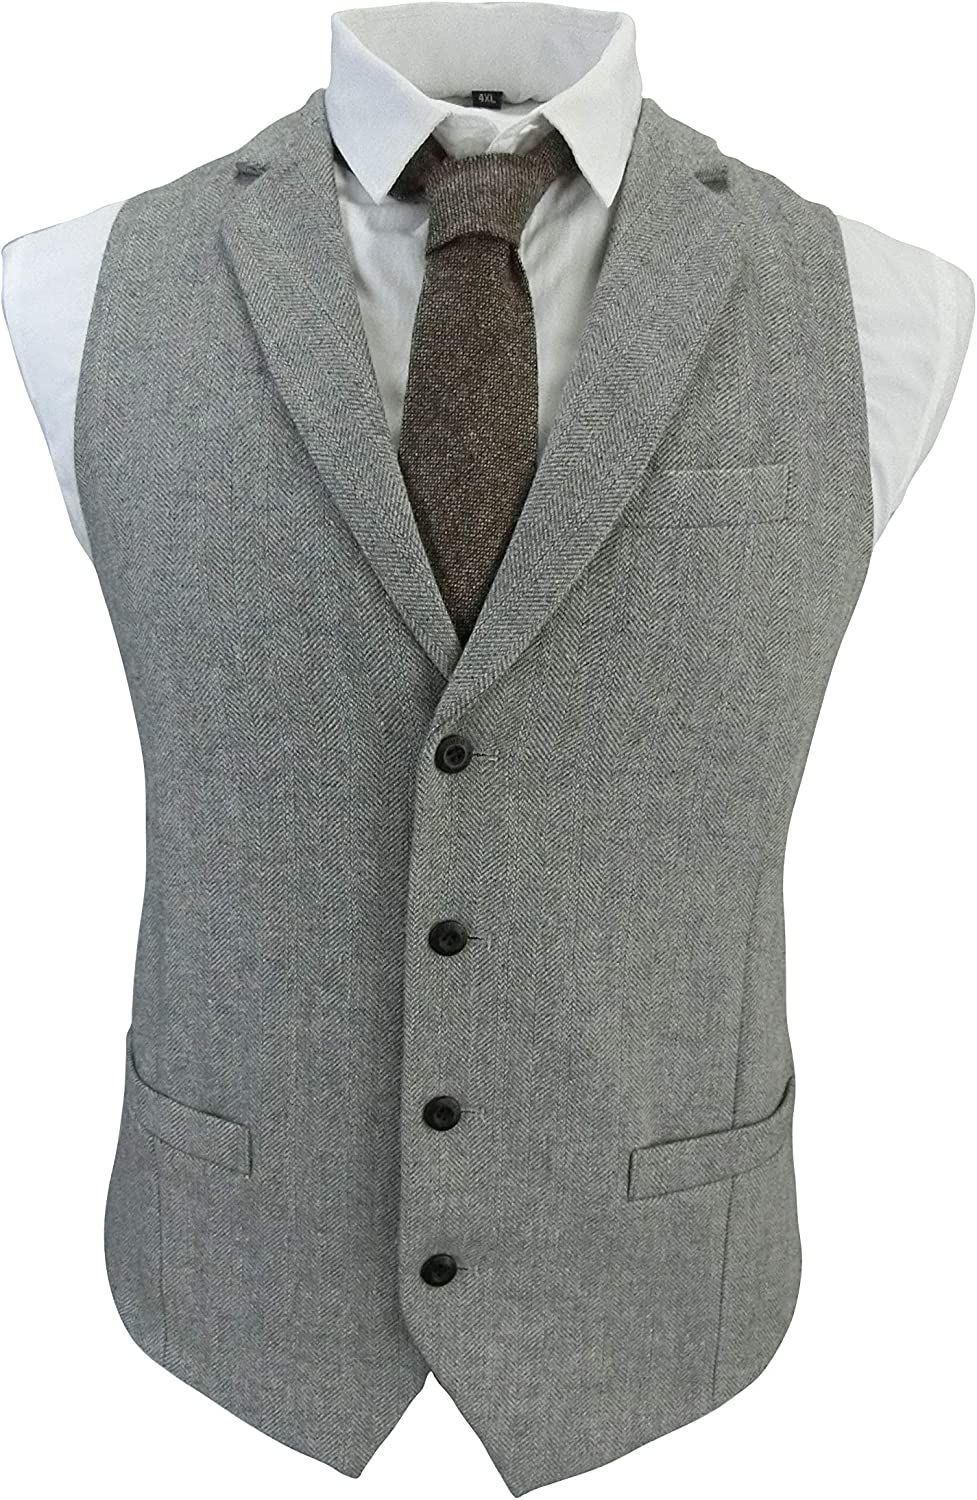 Men's 4 Button Buckle Wool Herringbone Tweed Custom Collar Business Suit Vest